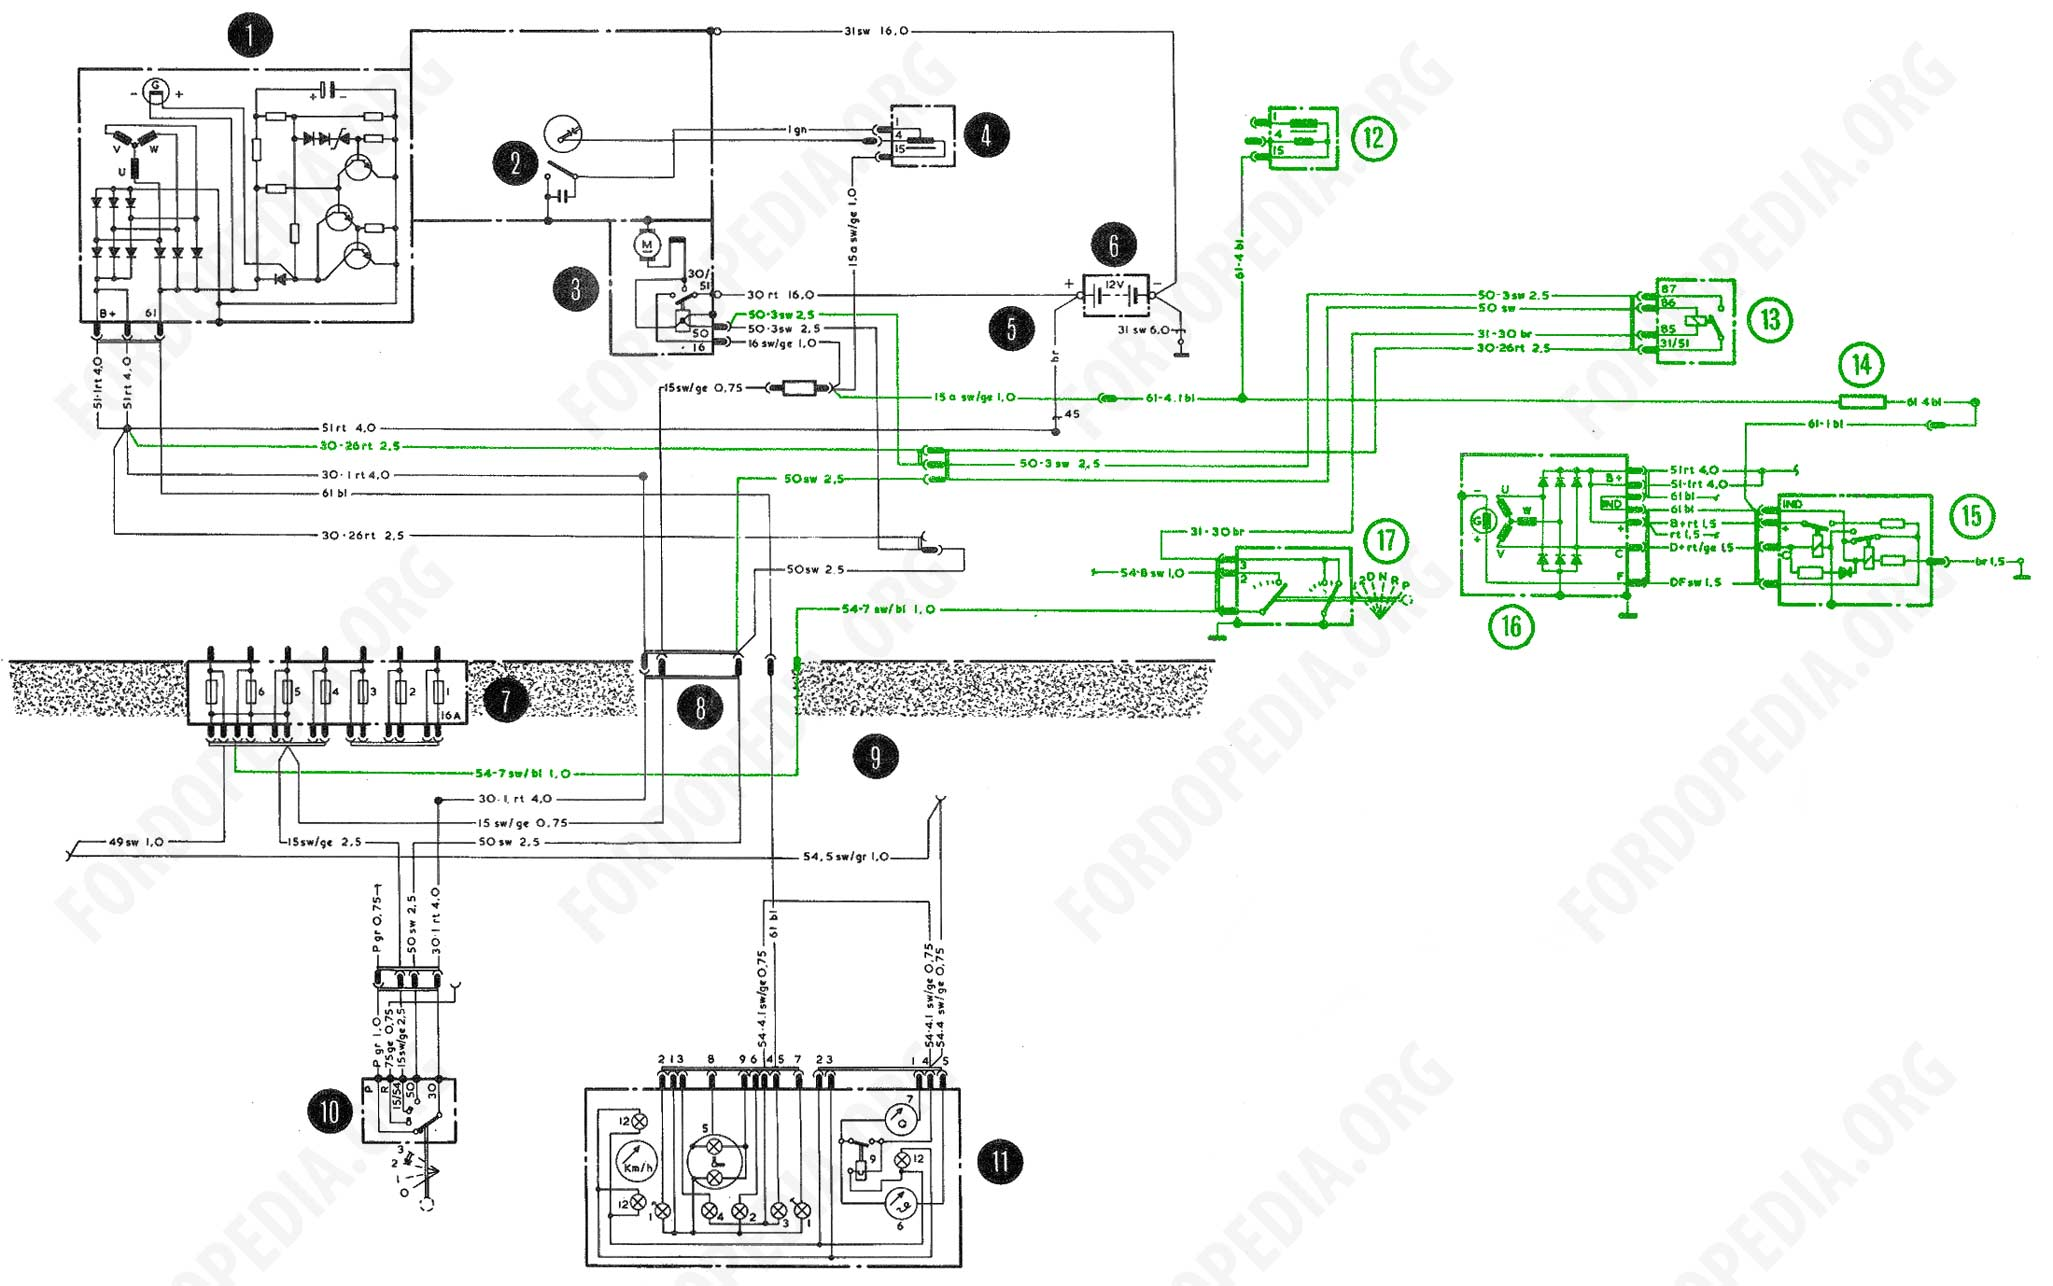 download full-size image (2056x1283, 220 kb) wiring diagrams: taunus tc2 /  cortina mk4 - base version, l version, gl